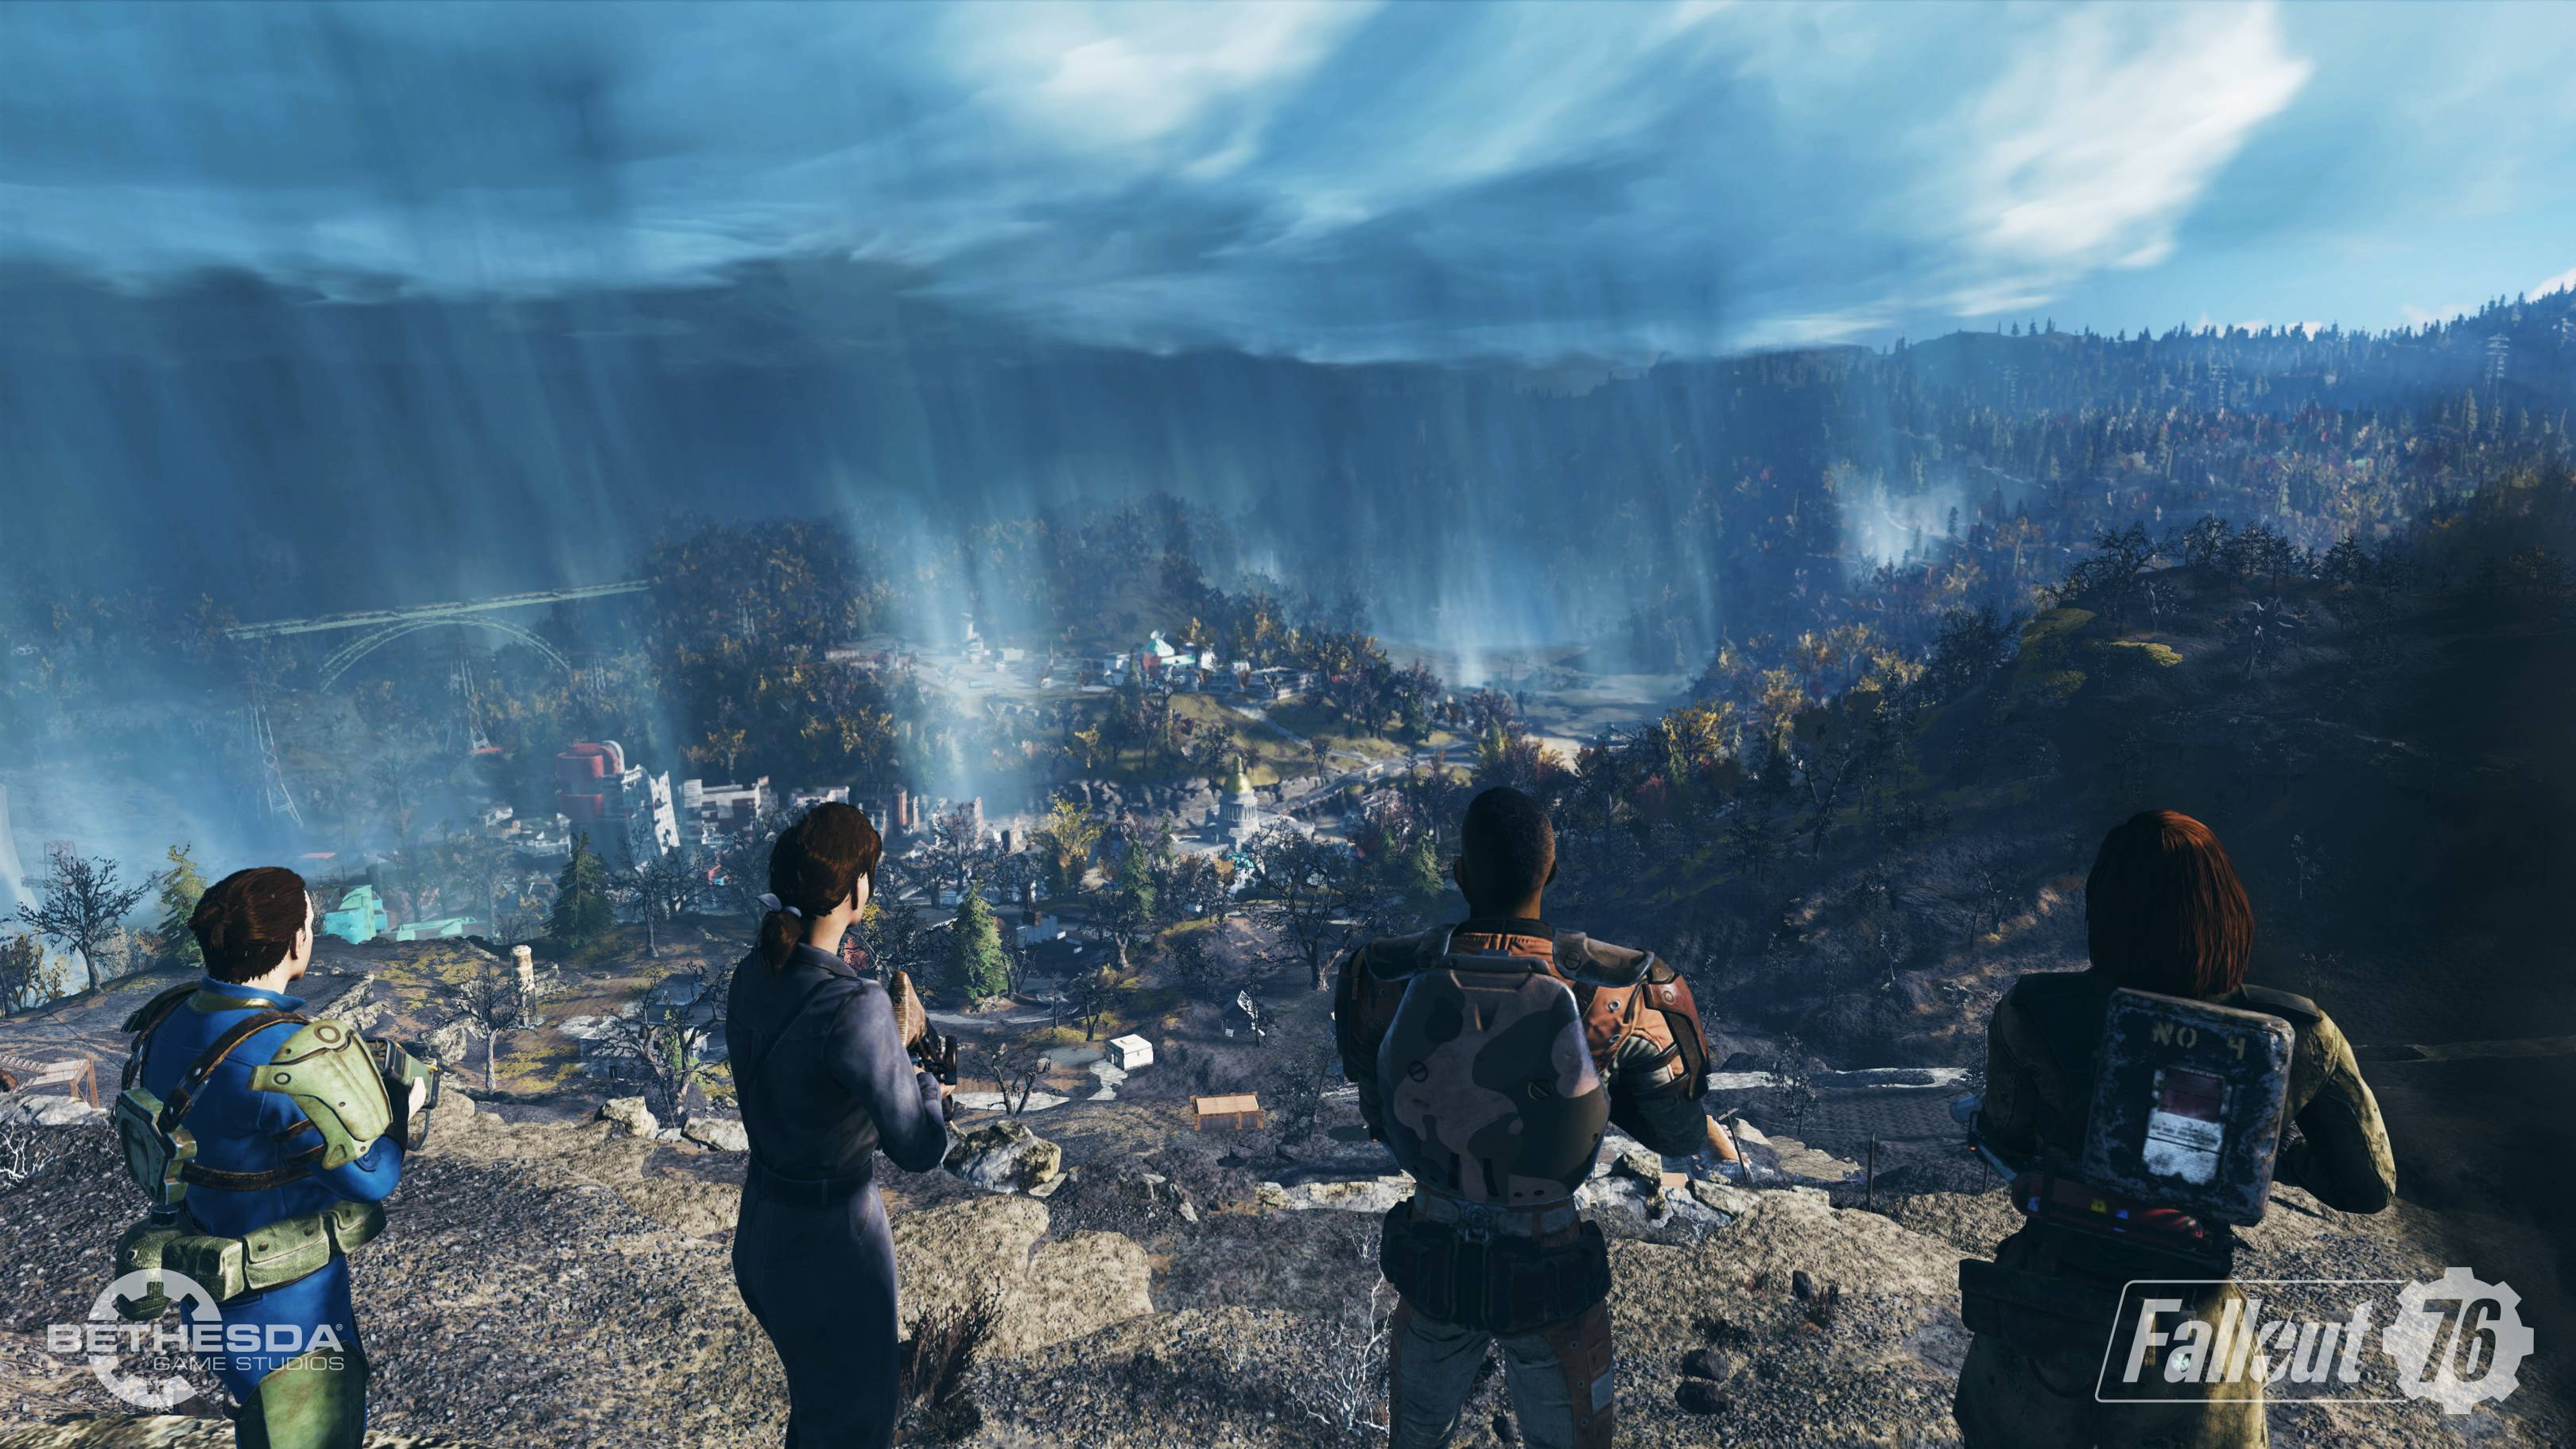 Meet Fallout's philosophers who are obsessed with the game's